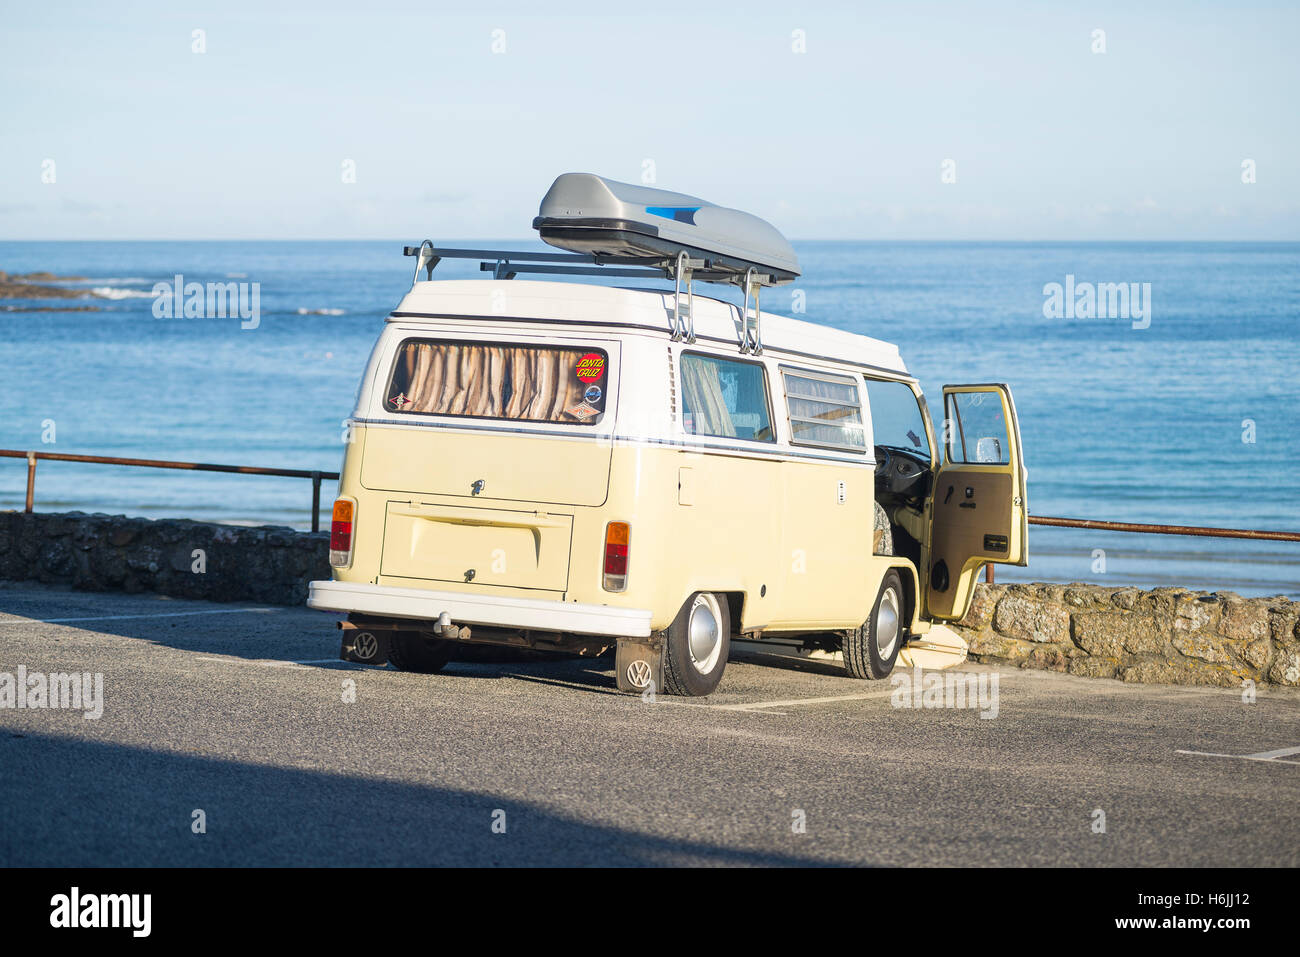 volkswagen bus stock photos volkswagen bus stock images. Black Bedroom Furniture Sets. Home Design Ideas